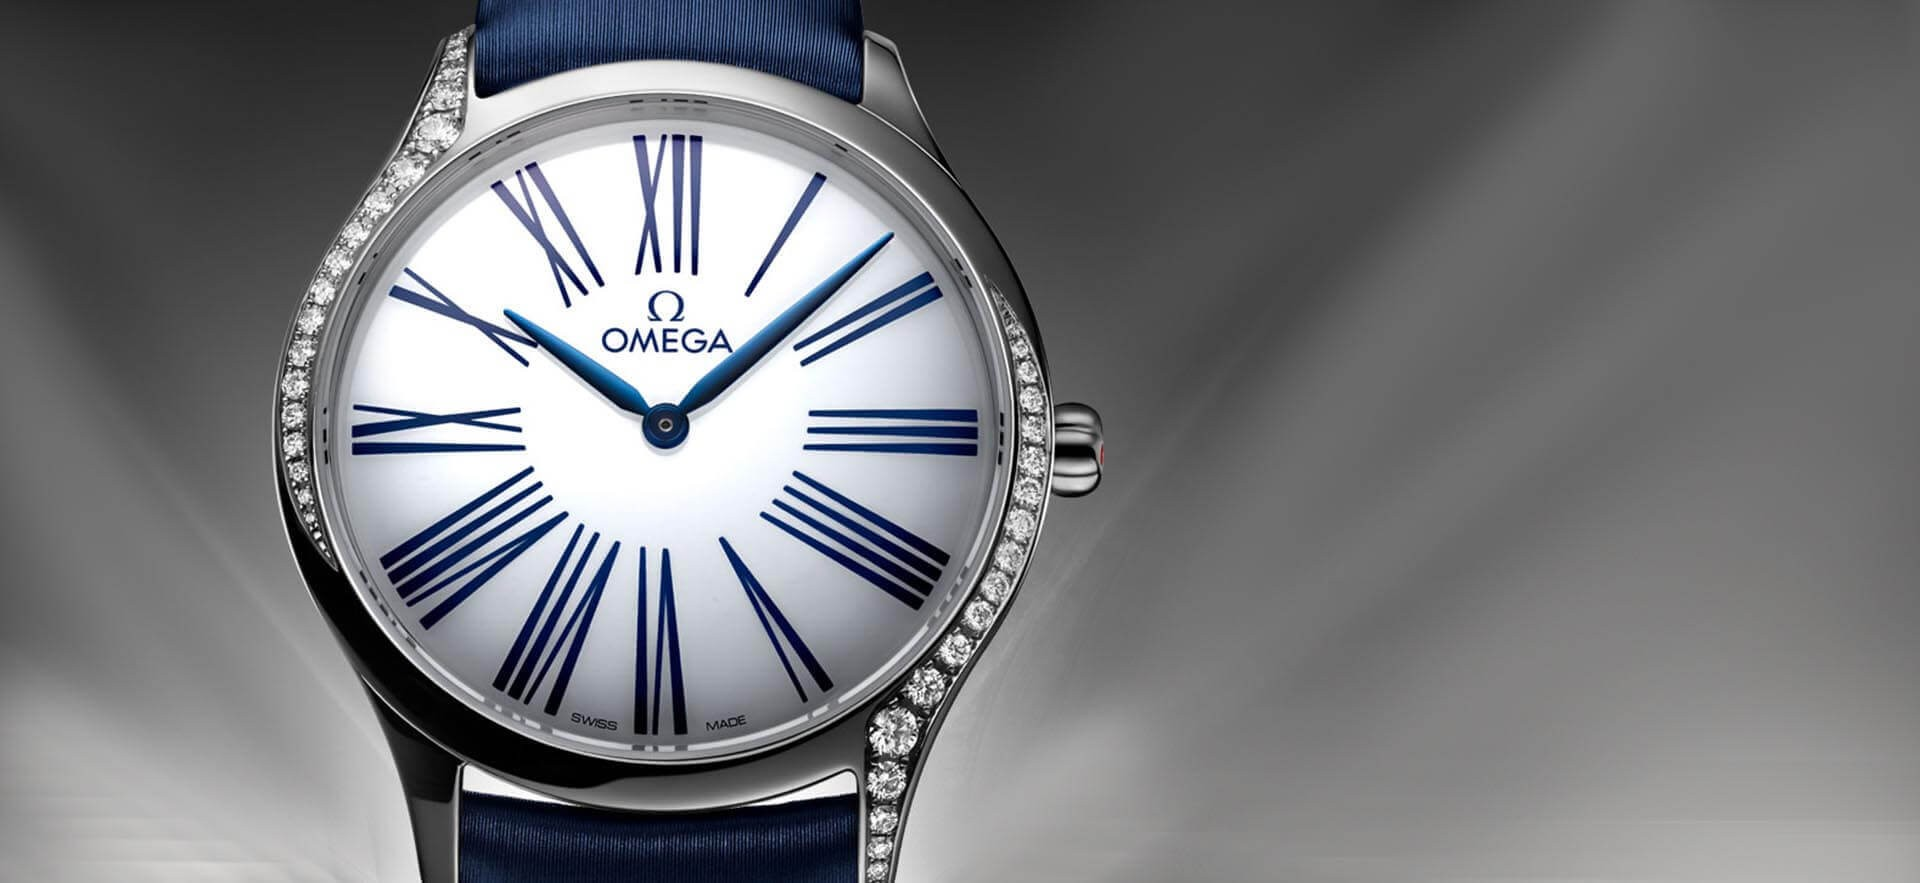 Explore Omega Watches